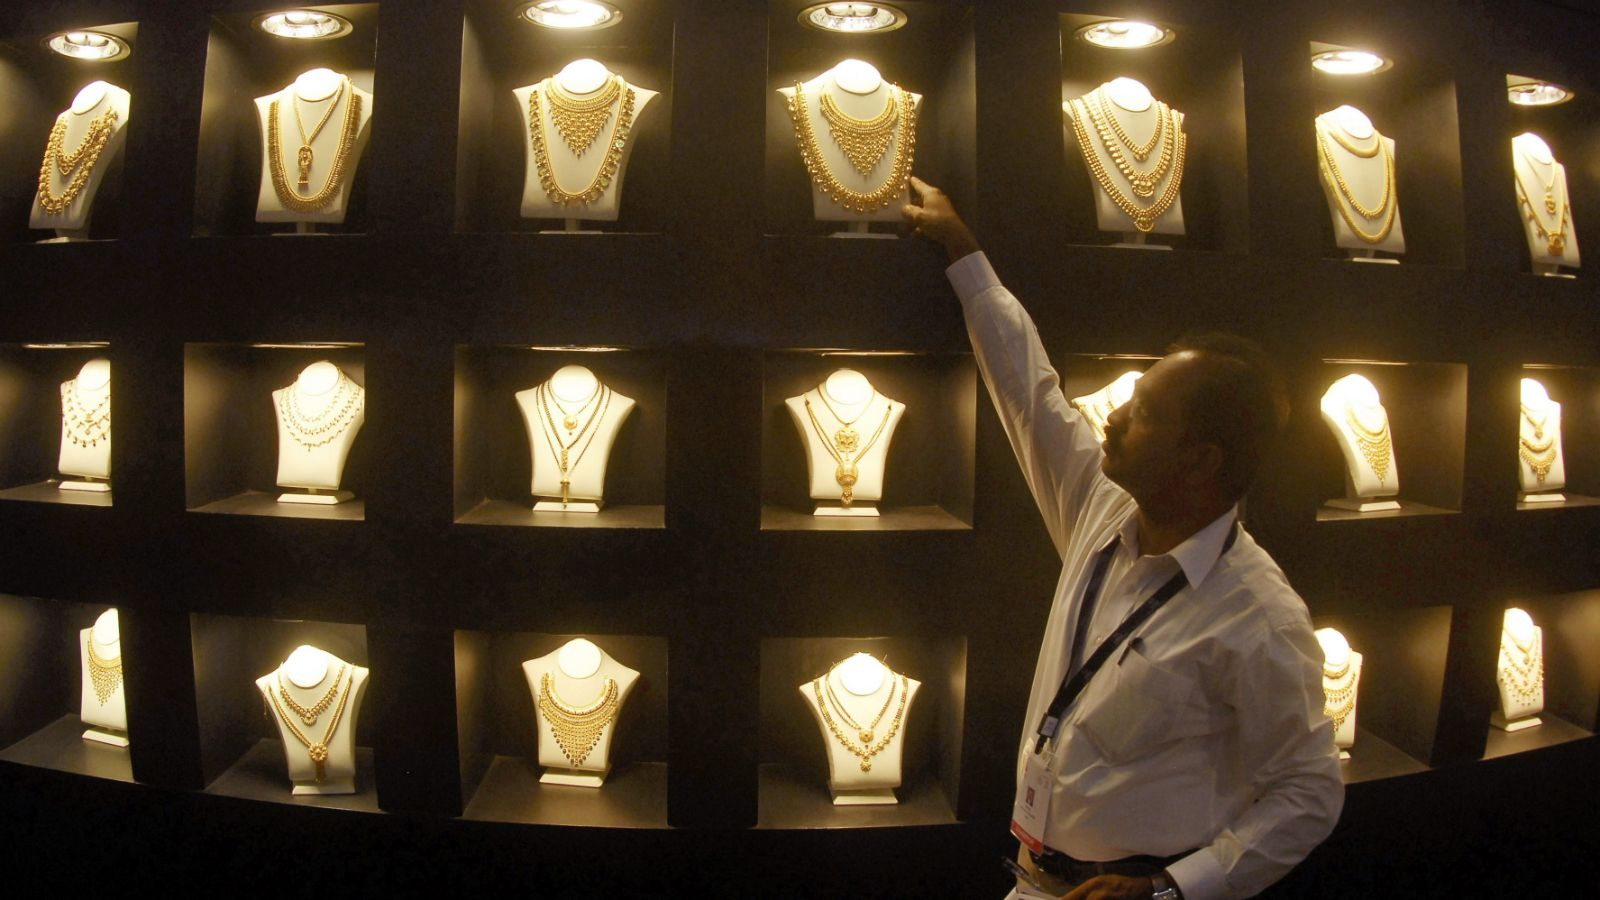 An employee displays gold necklaces at the 'Gem and Jewellery India International Exhibition 2010' (GJIIE) in the southern Indian city of Chennai January 23, 2010. India's gold traders continued to pick bargains for a third day in a row on Friday as prices remained at their 2-½ month low, but a weaker rupee weighed on sentiment, dealers said.